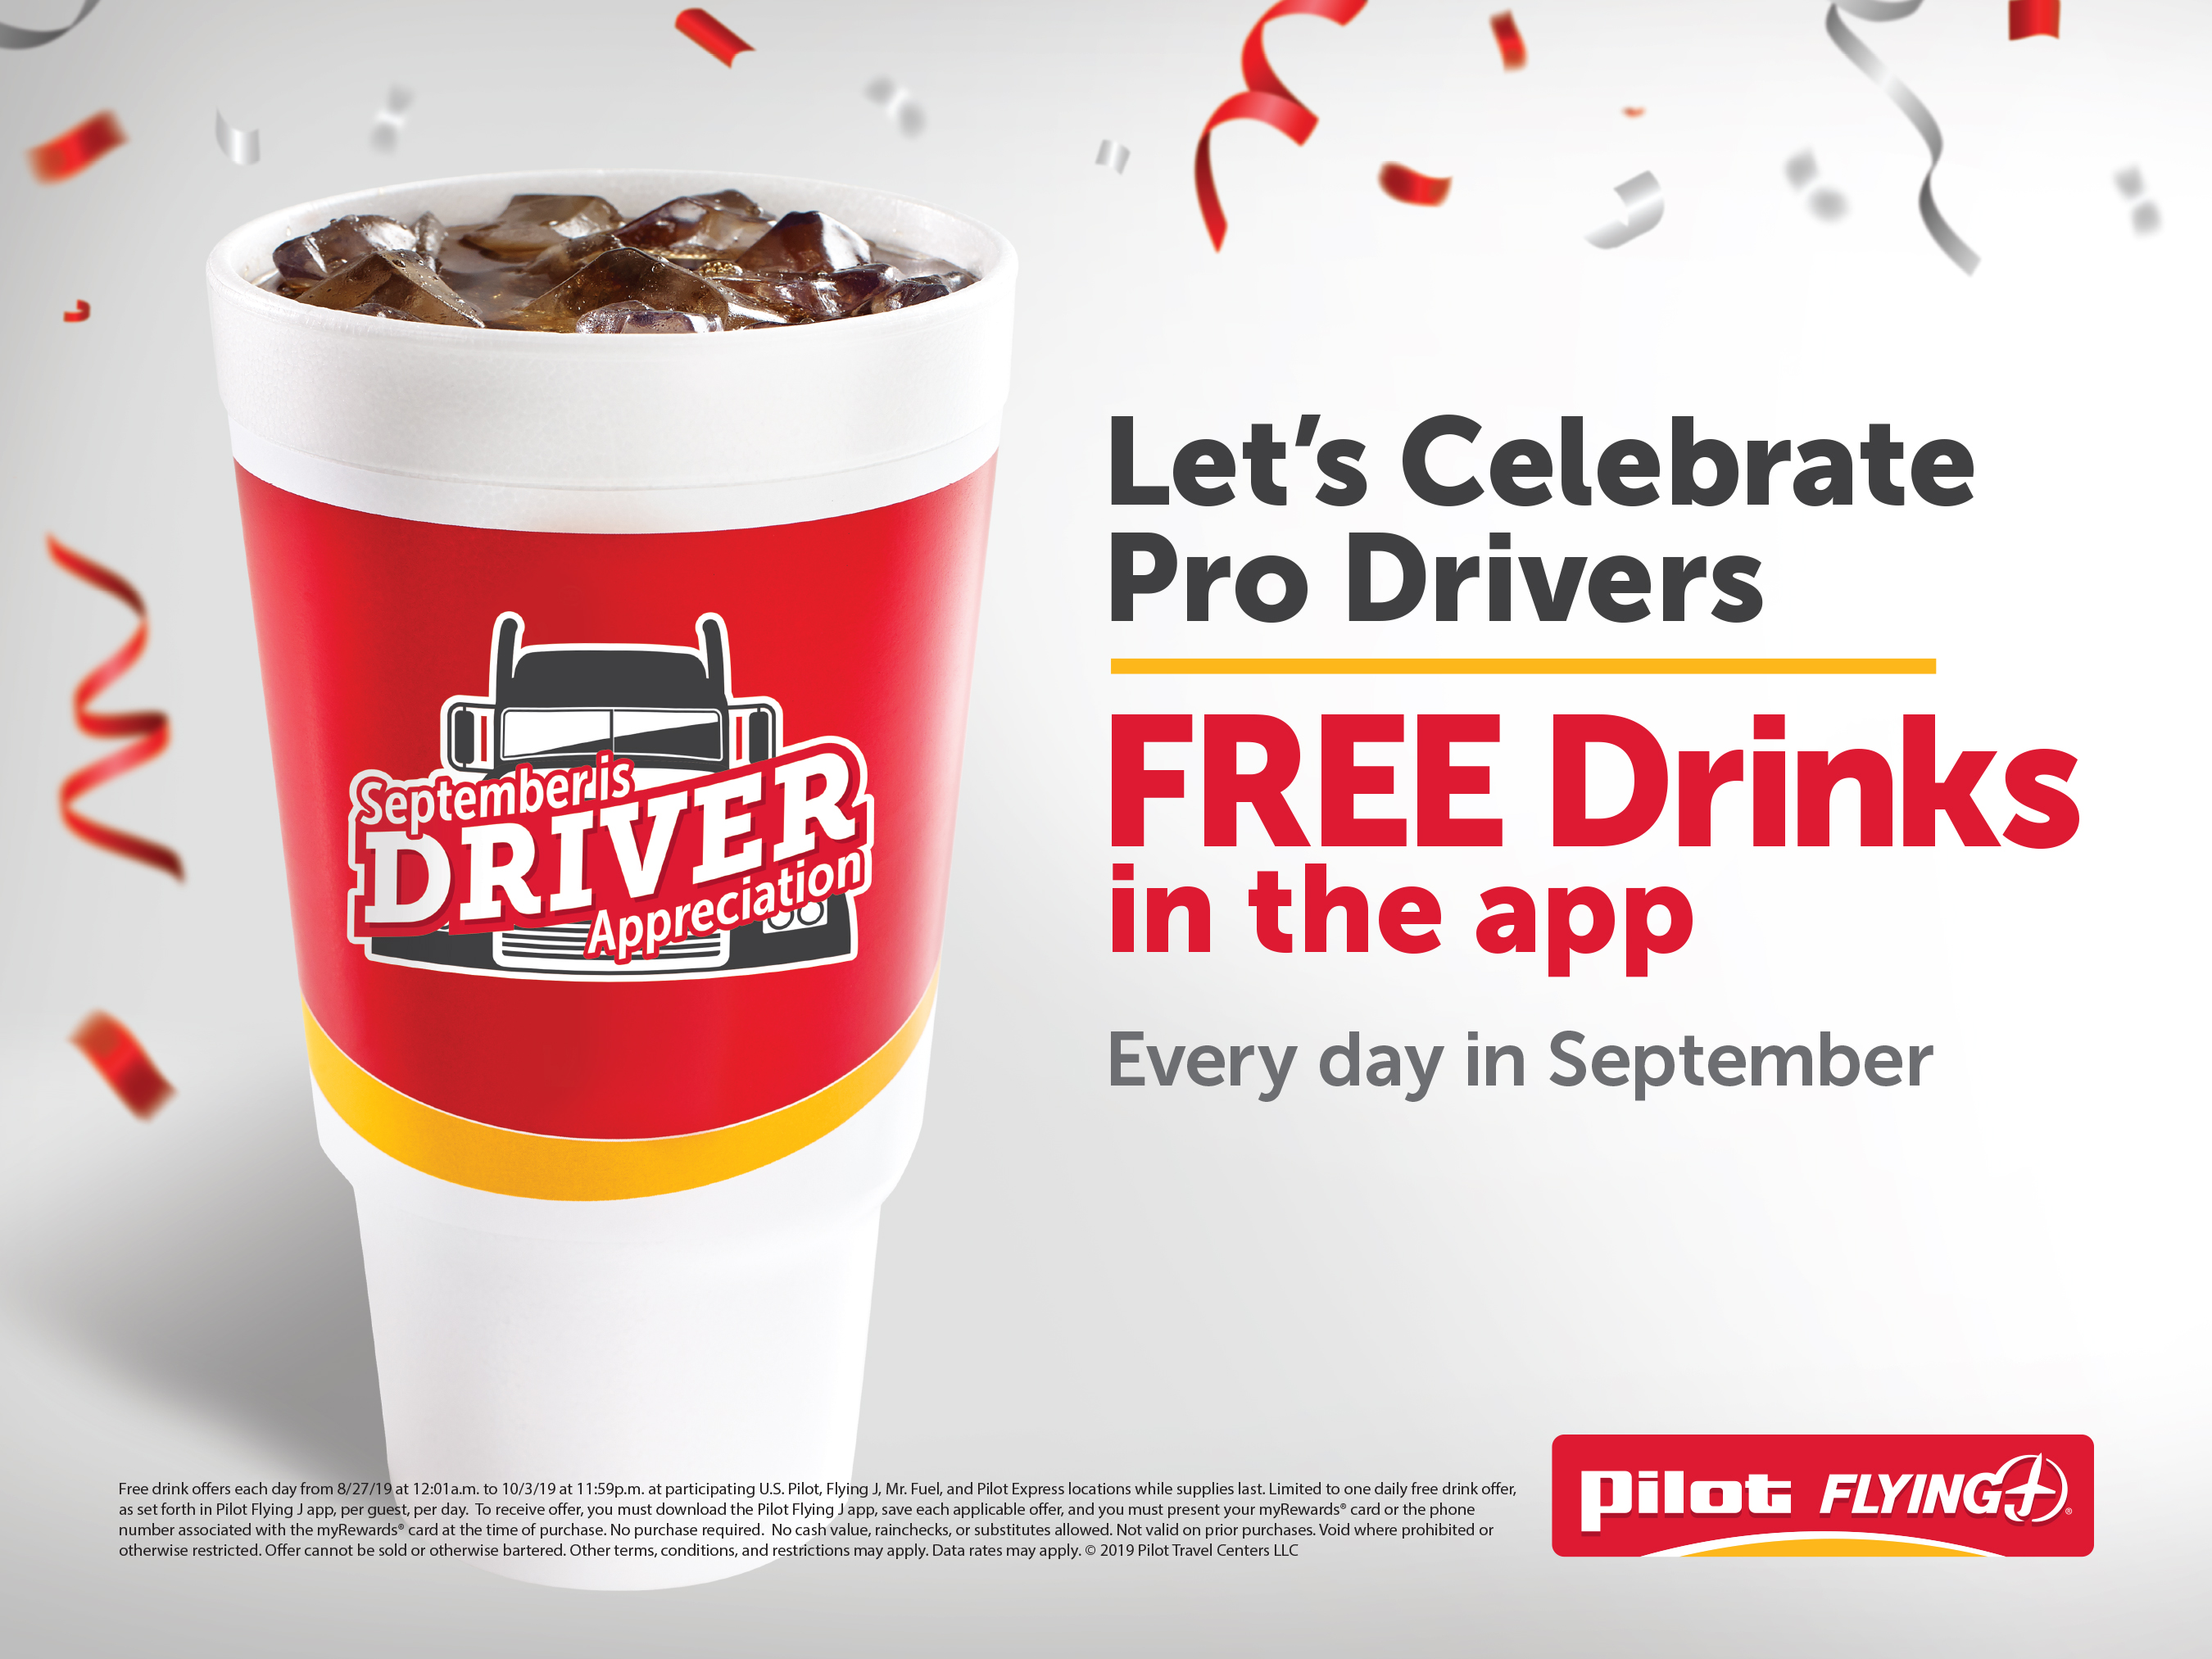 Download the Pilot Flying J app and get a free drink every day in September